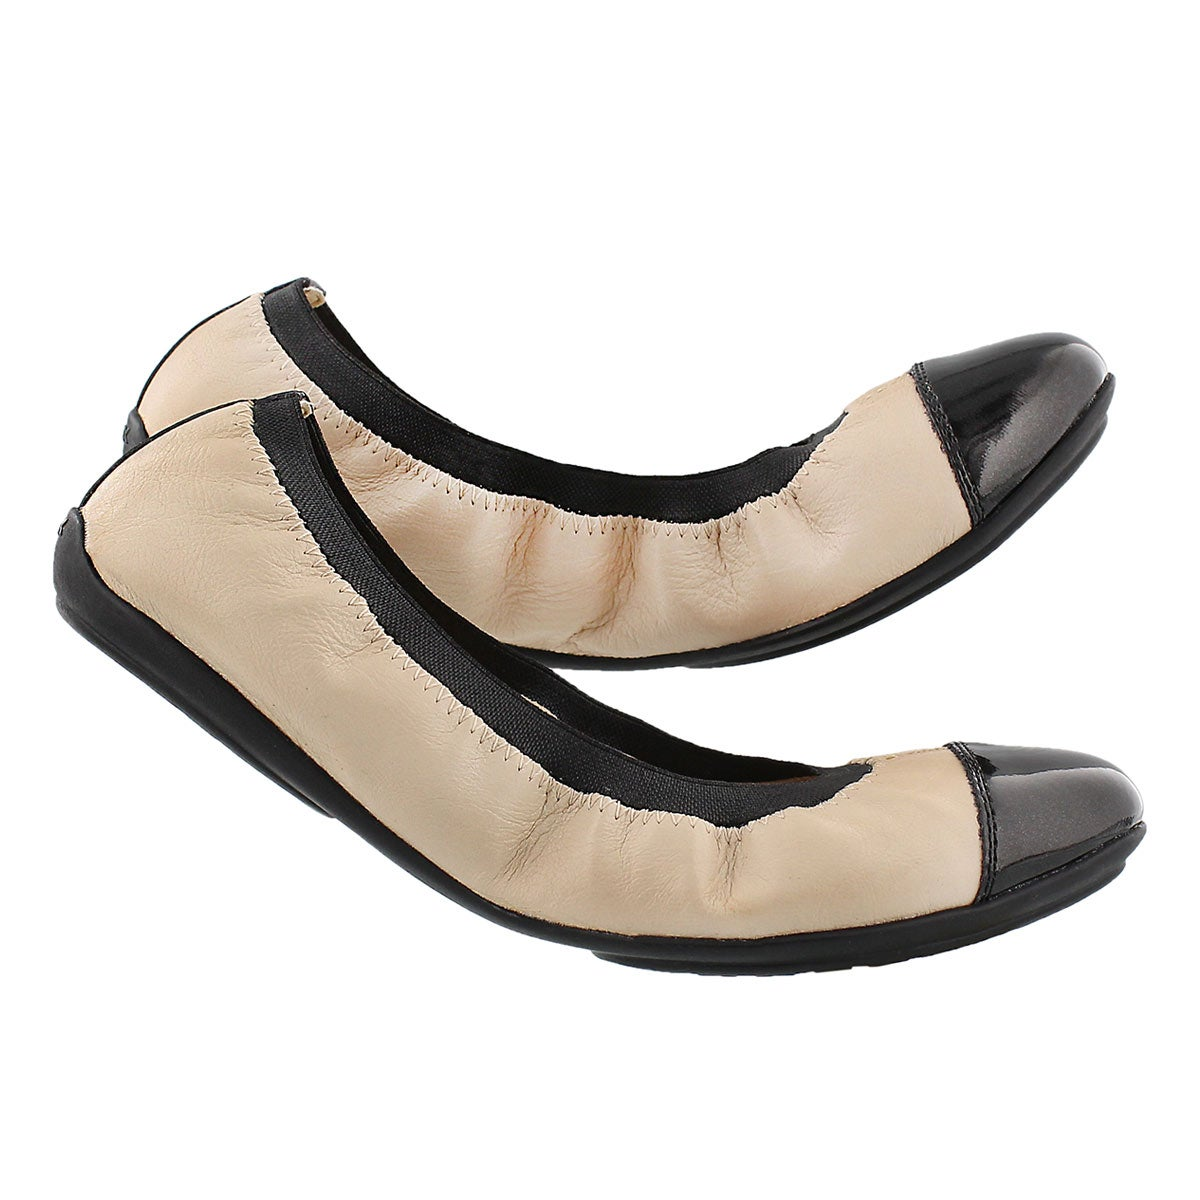 Lds Charlene skin/blk dress flat